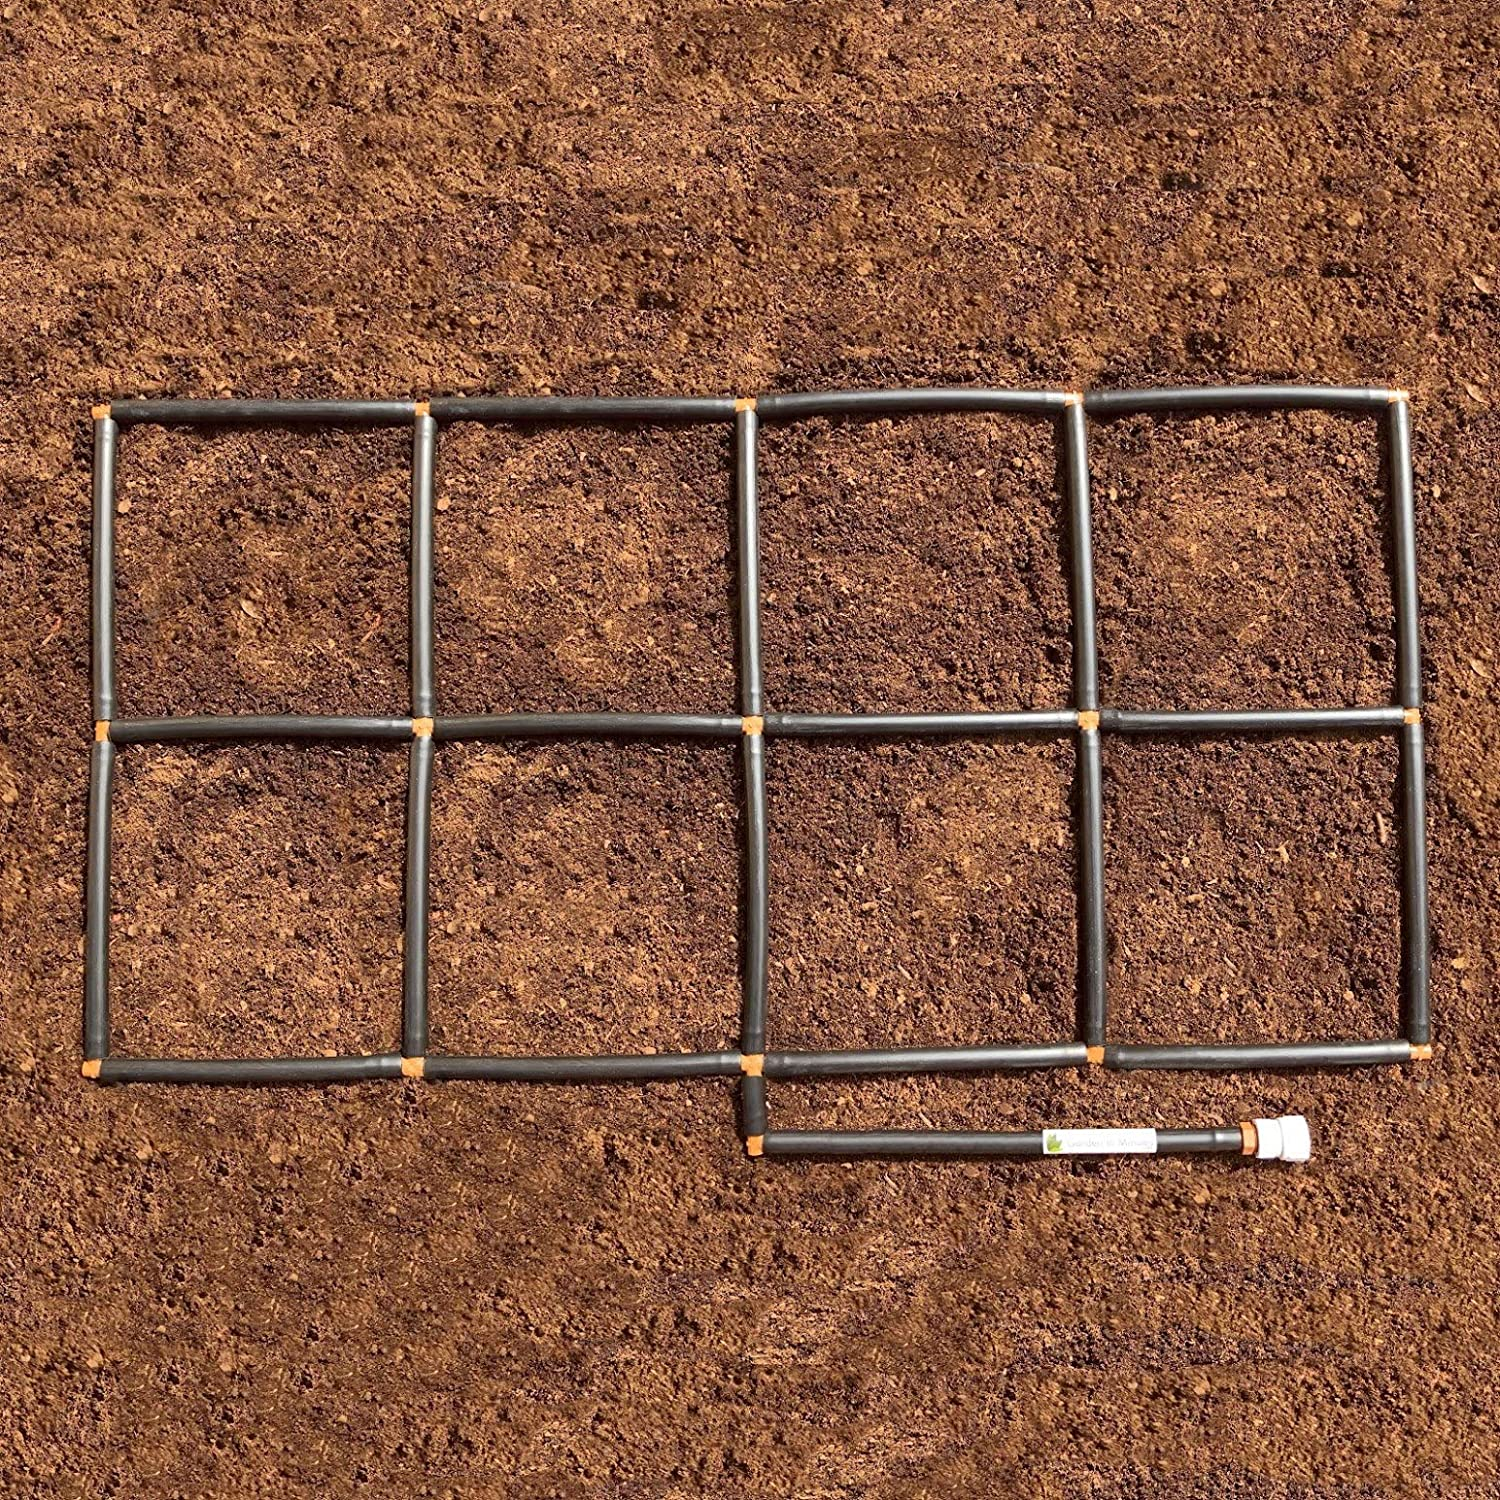 Preassembled Drip Irrigation Planters or Ground Level 2x2 Garden In Minutes Garden Grid Watering System Square Foot Gardens in one Soaker Hose /& Sprayer Style kit 22.5x22.5 Raised Beds